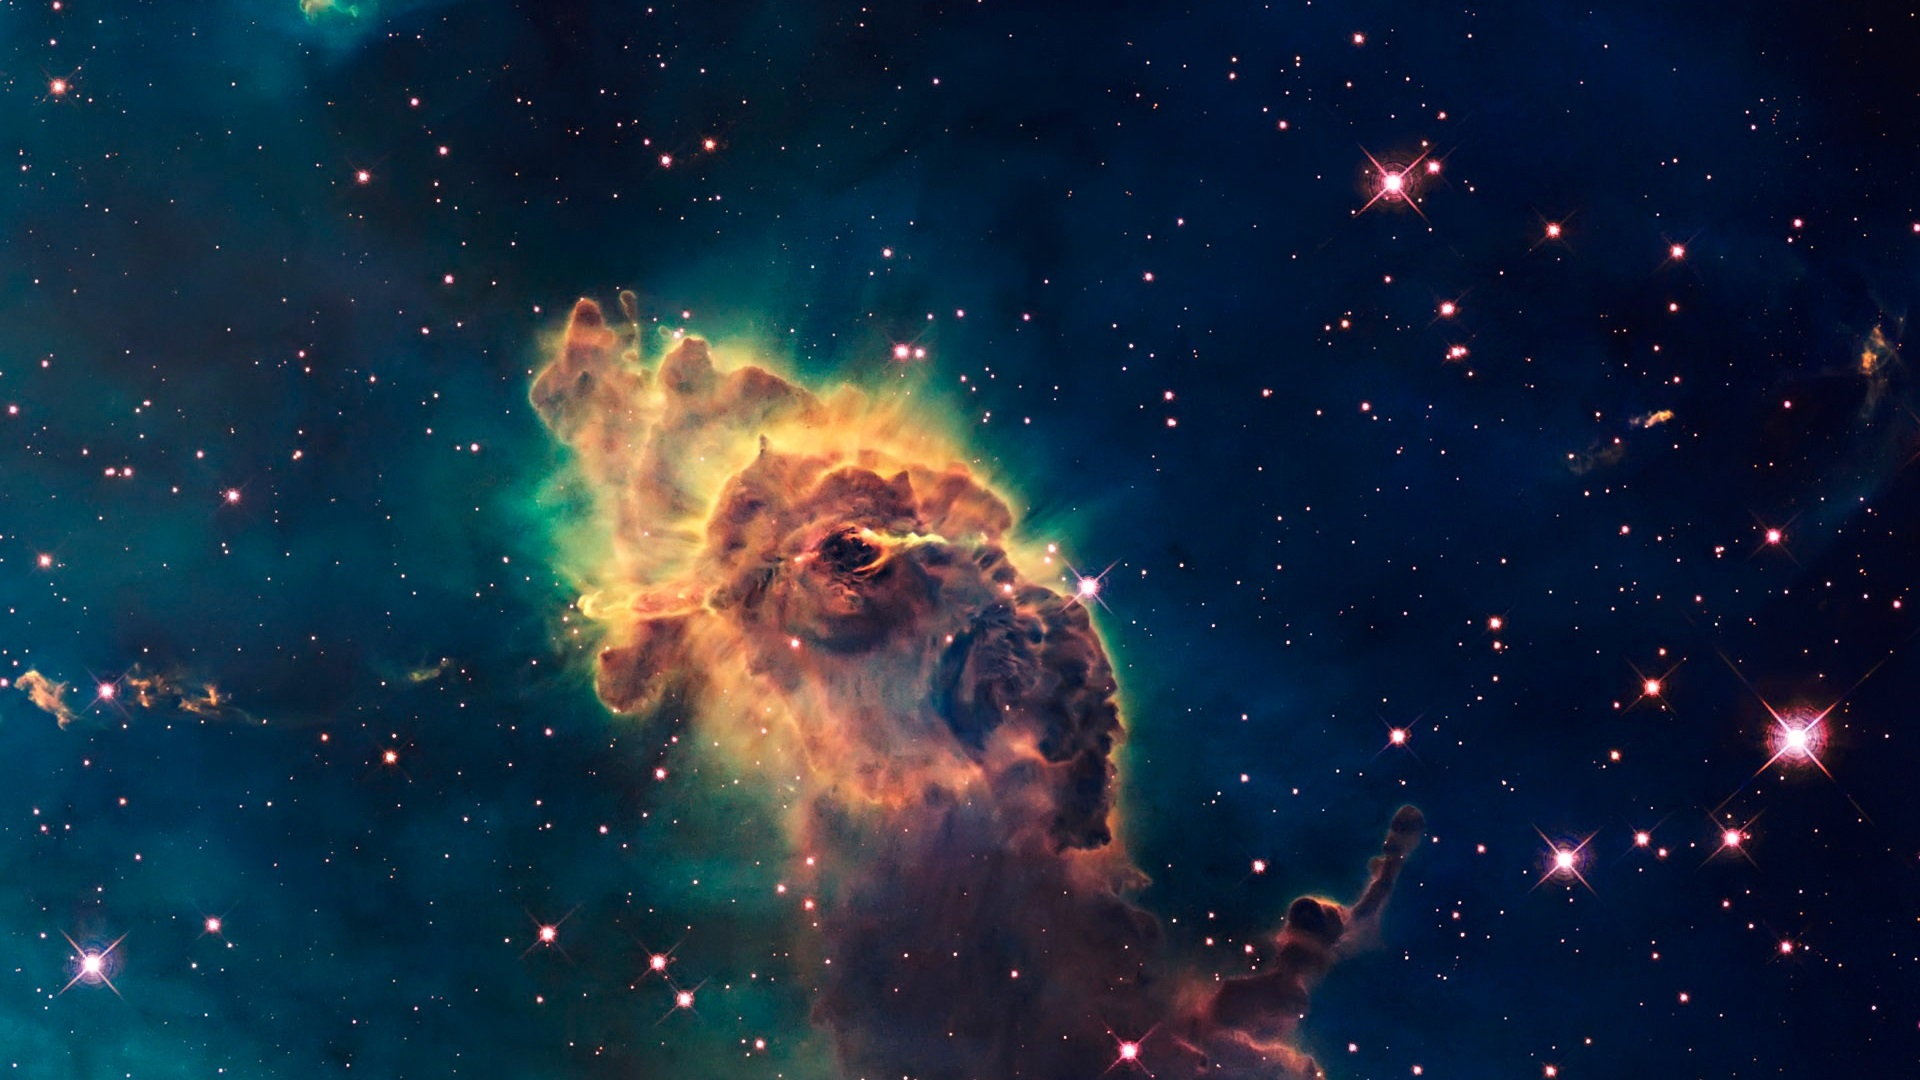 hubble space telescope star 2 - photo #18